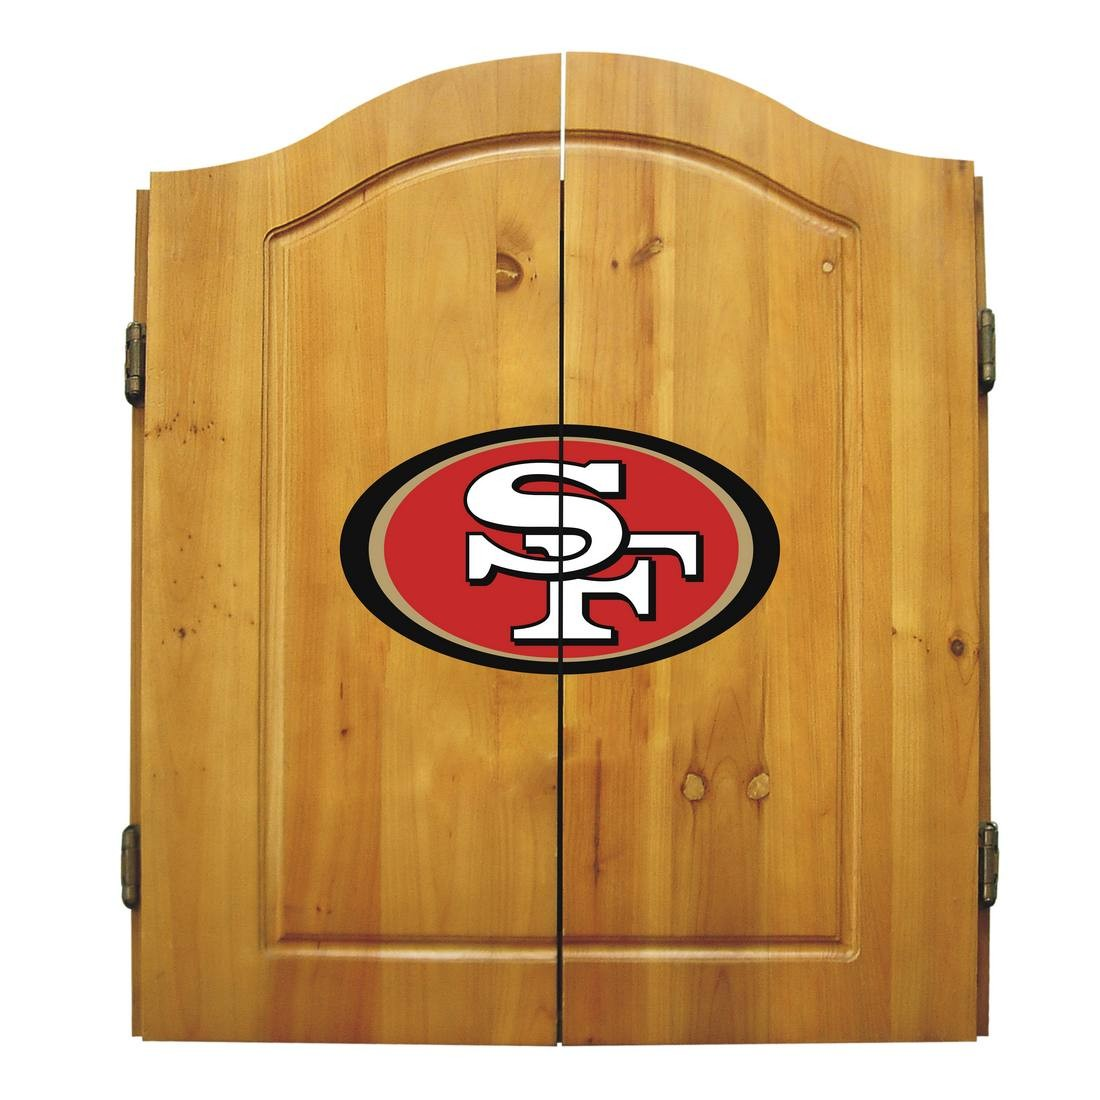 Nfl Football San Francisco 49ers Bbq Sets - 20-1005 - San Francisco 49ers Dart Cabinet Set 20-1005